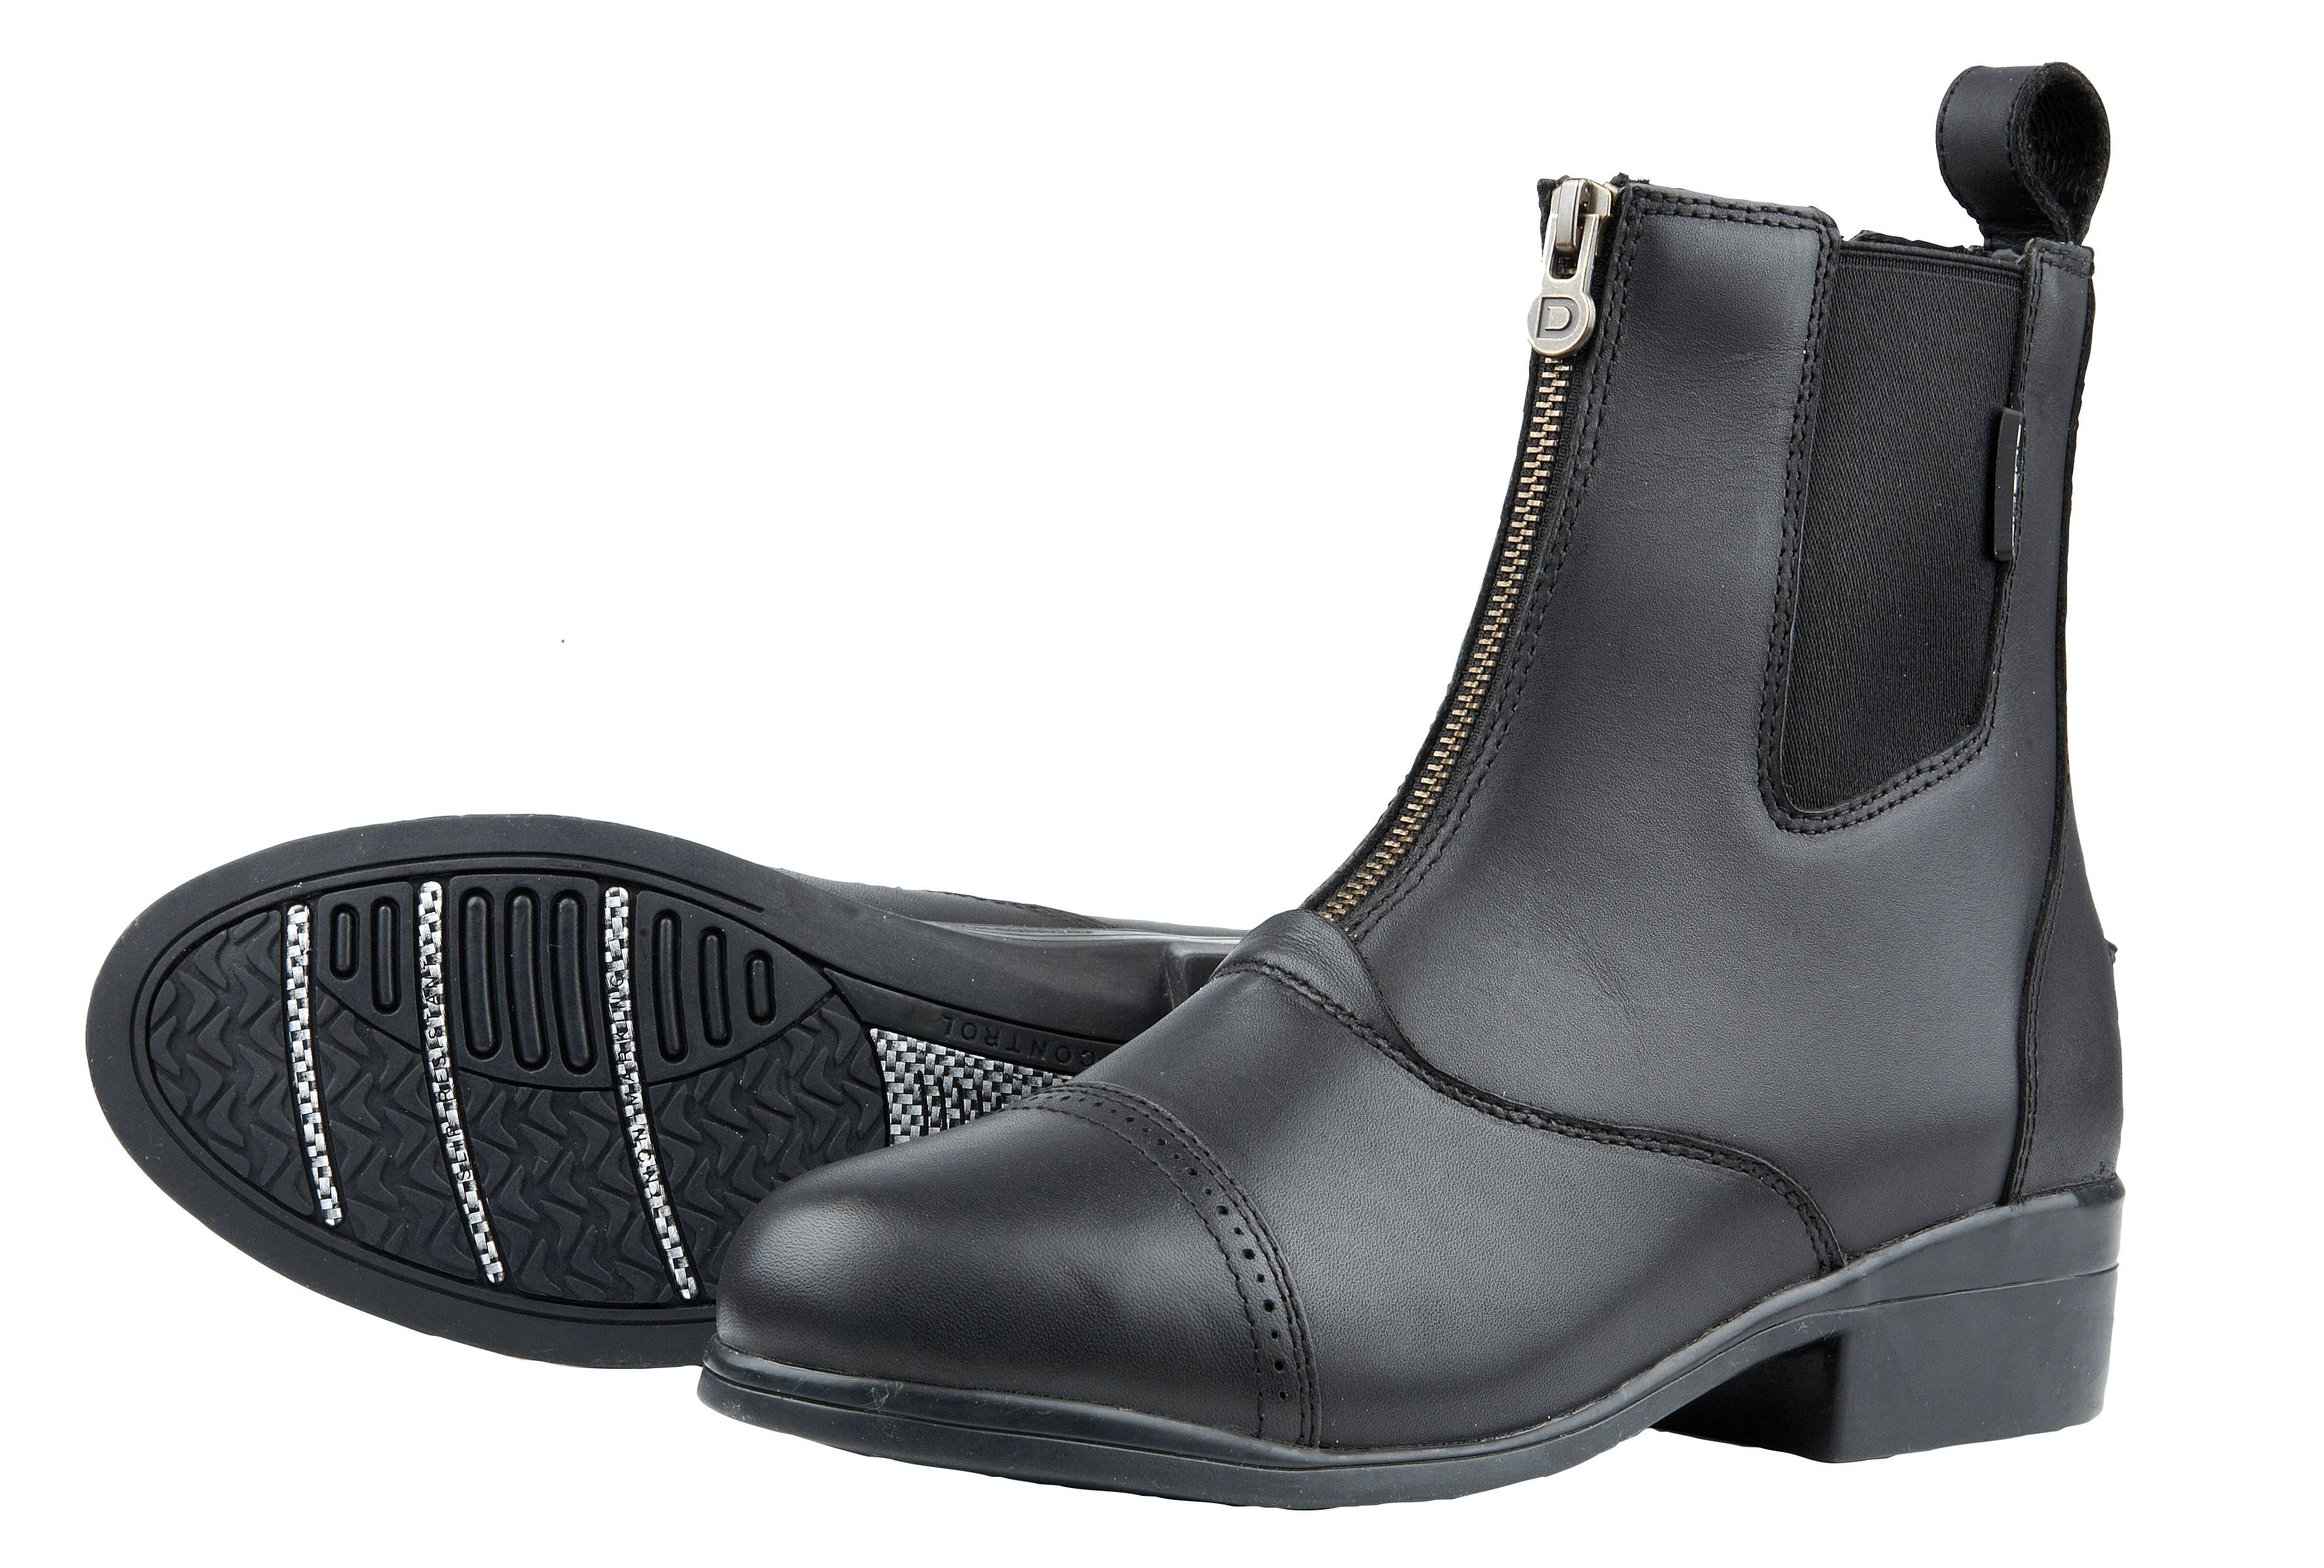 Dublin Apex Zip Paddock Boots - Ladies